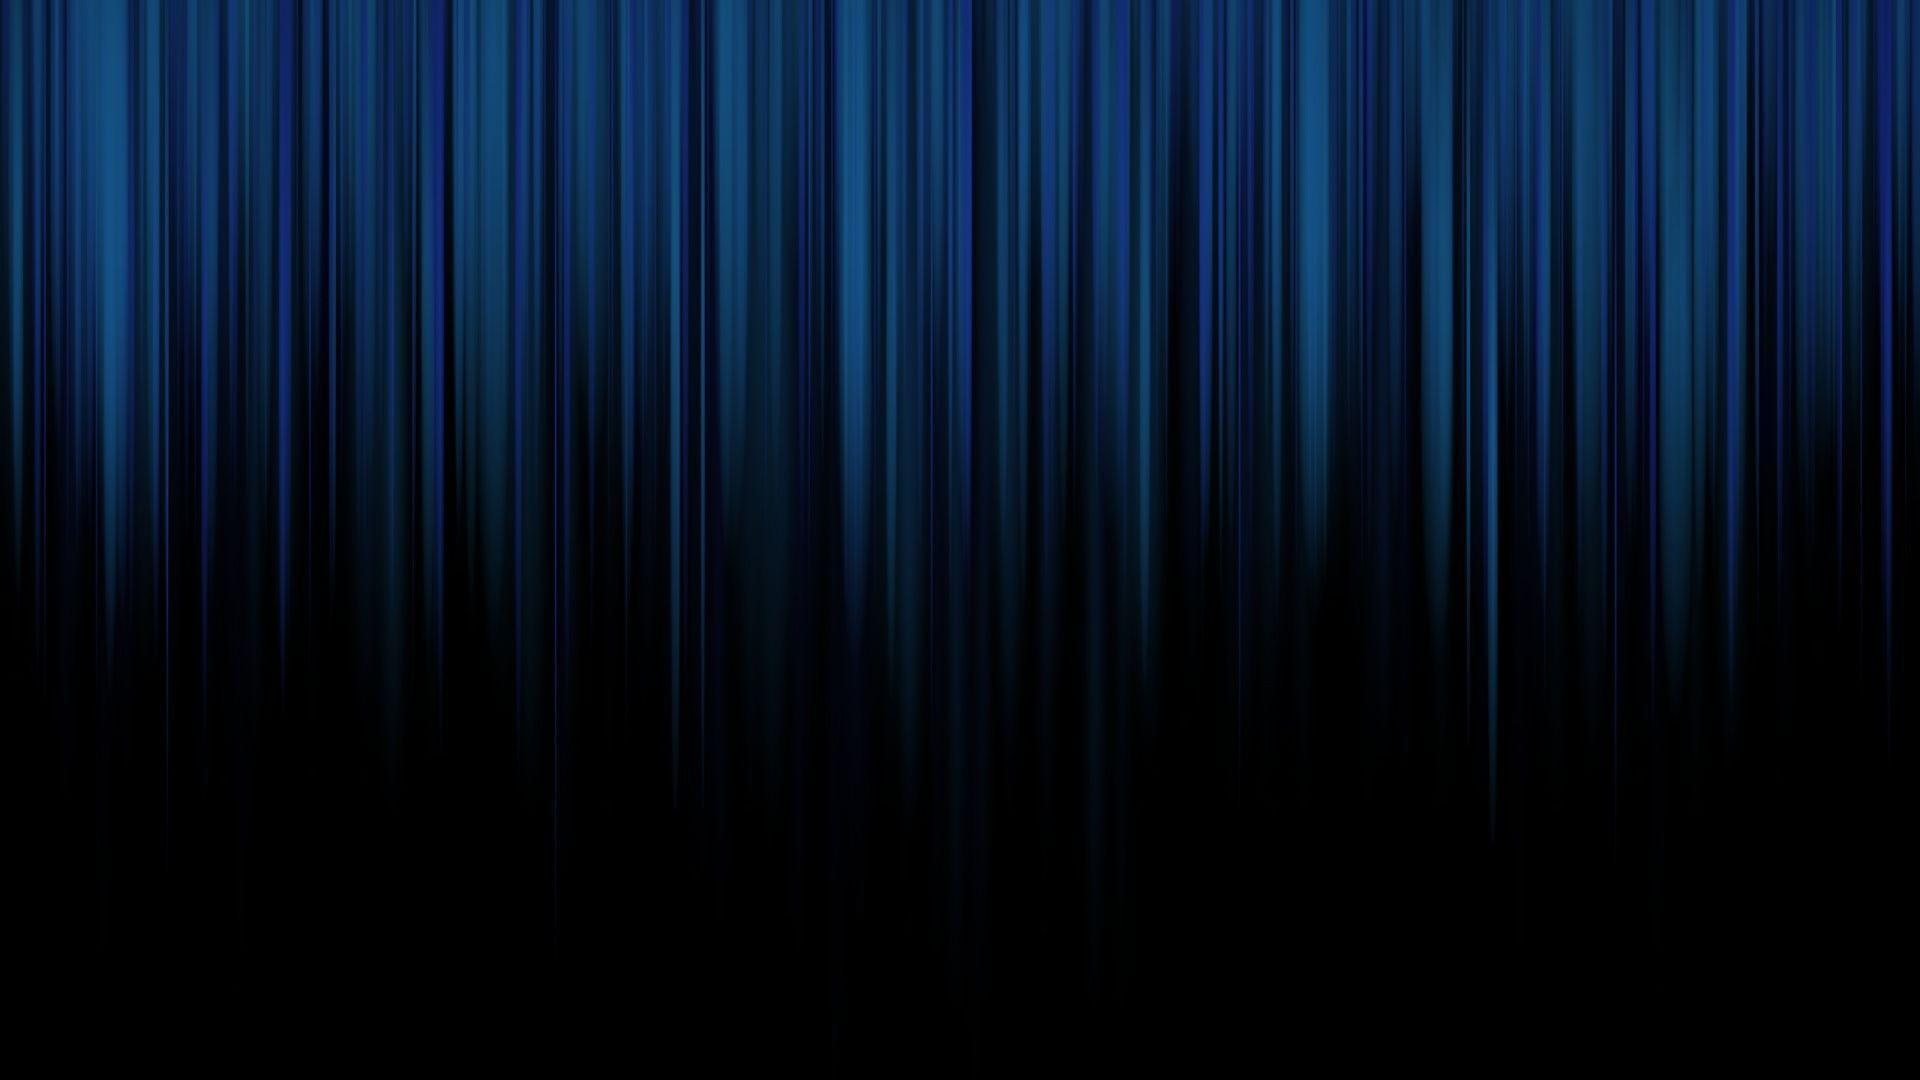 1920x1080 Black and Blue Stripes desktop PC and Mac wallpapers